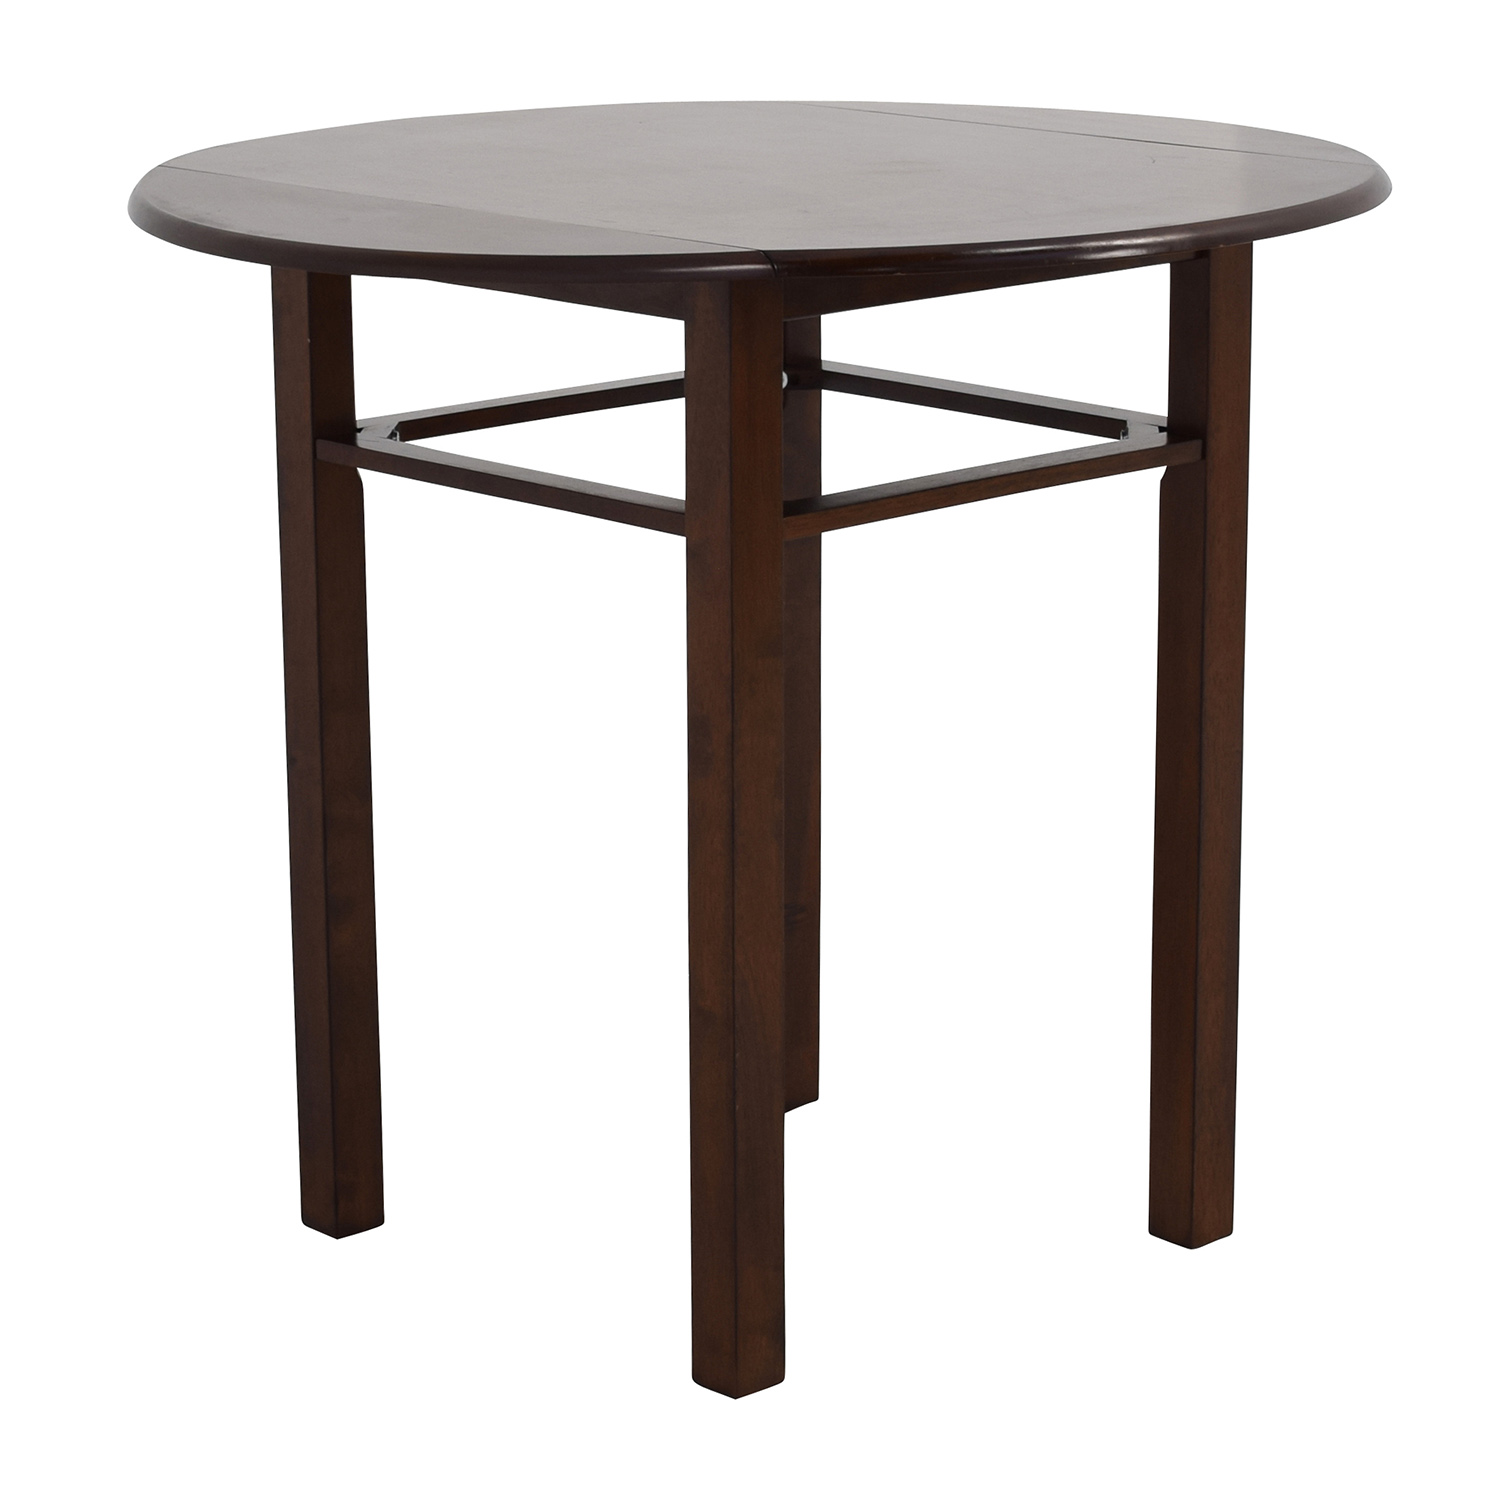 80 off whalen whalen round drop leaf dining table tables for Dining table with two leaves